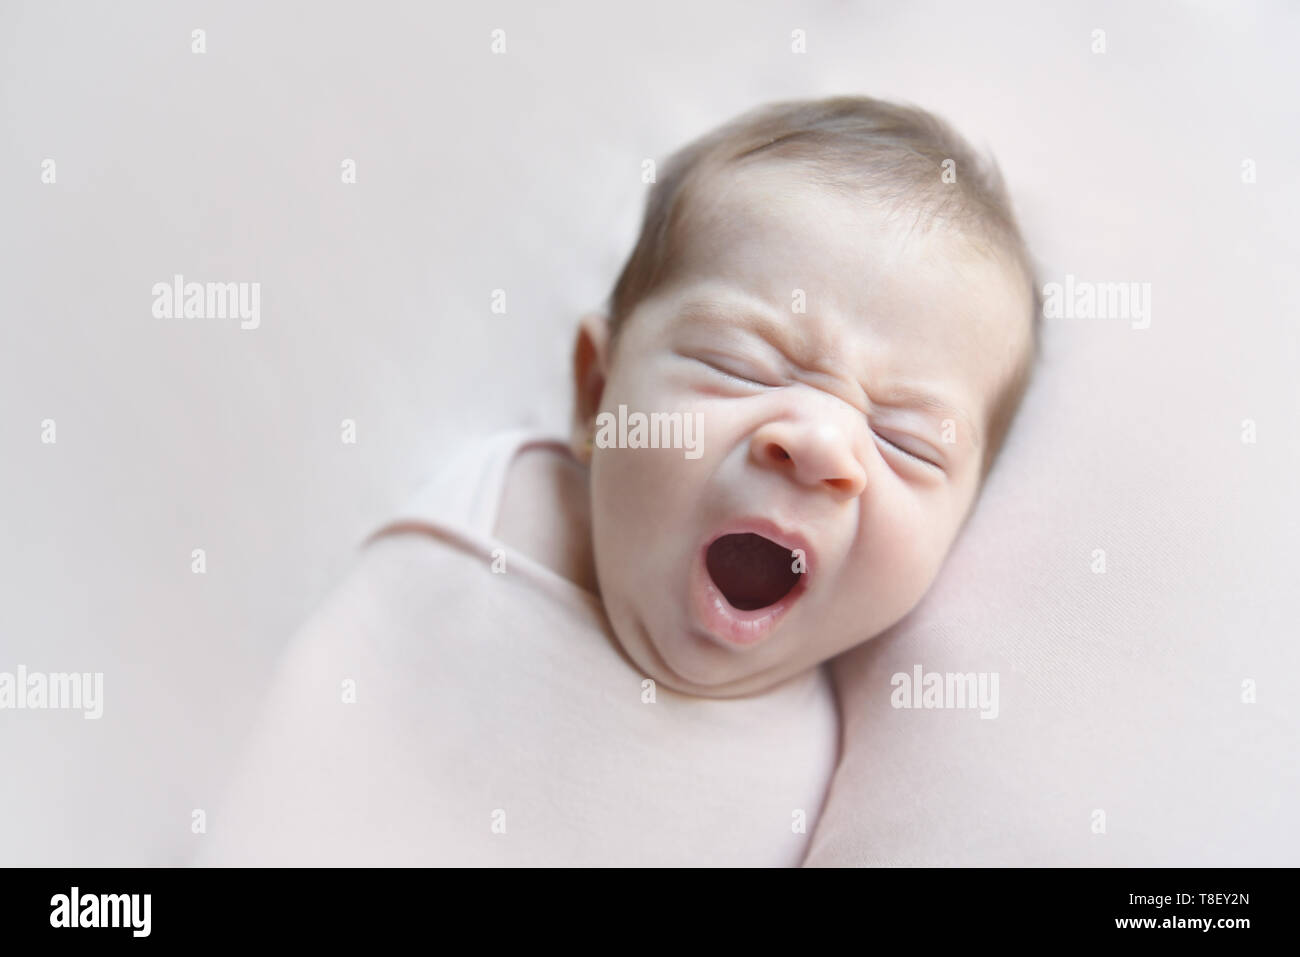 Newborn baby girl yawning lying in a pink blancket - Stock Image